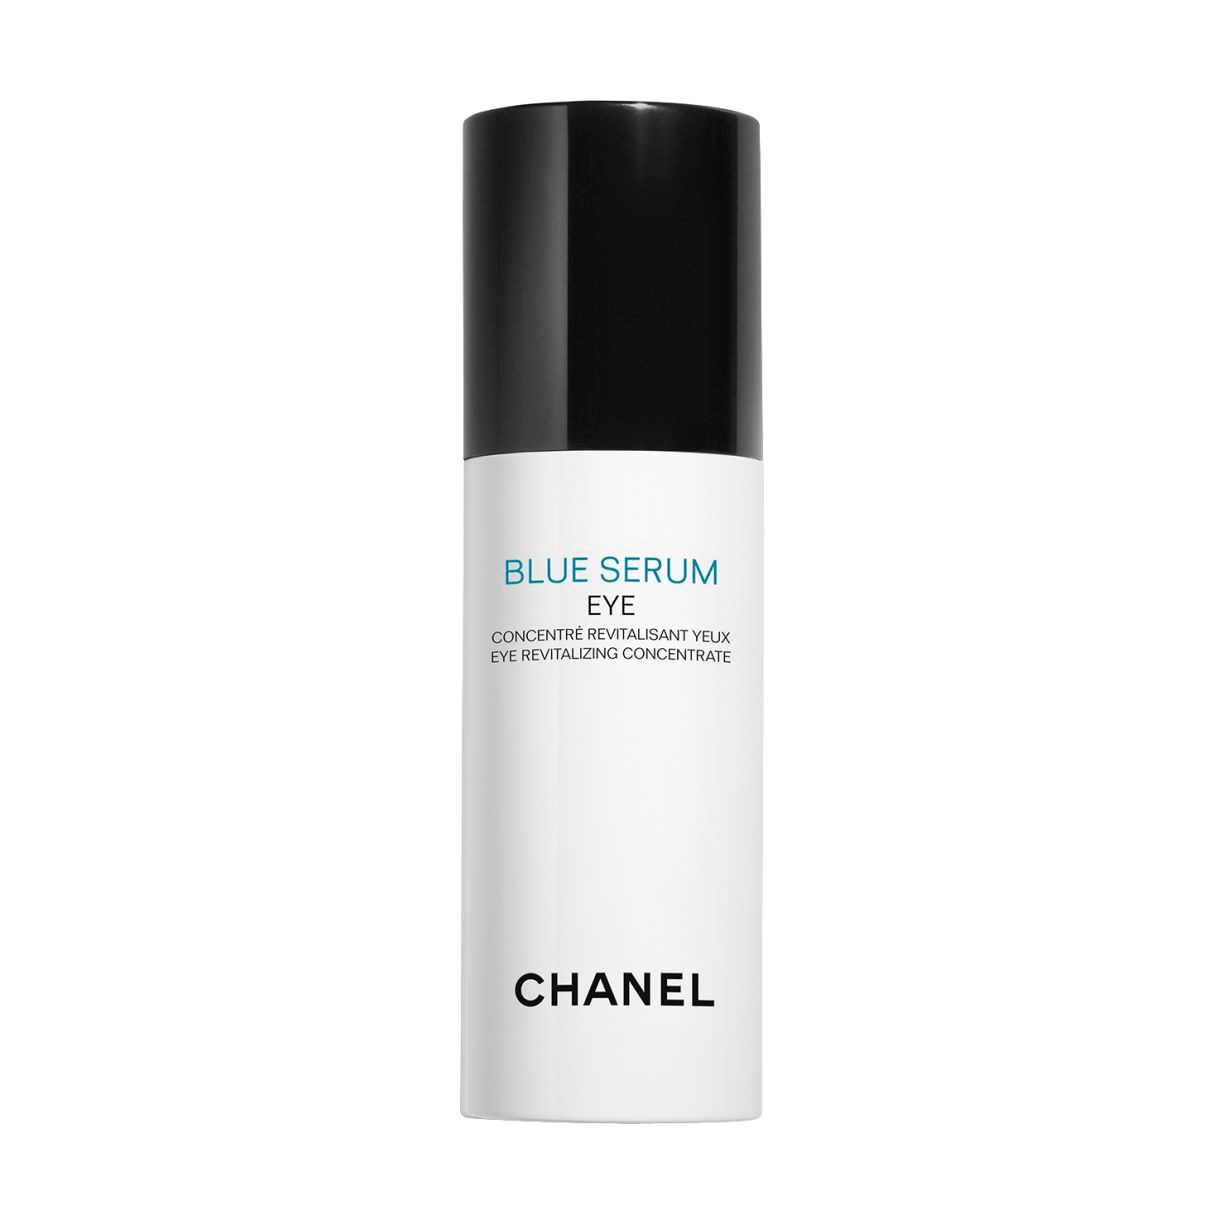 BLUE SERUM EYE LONGEVITY INGREDIENTS FROM DIETS OF THE WORLD'S BLUE ZONES. PUMP BOTTLE 15ML